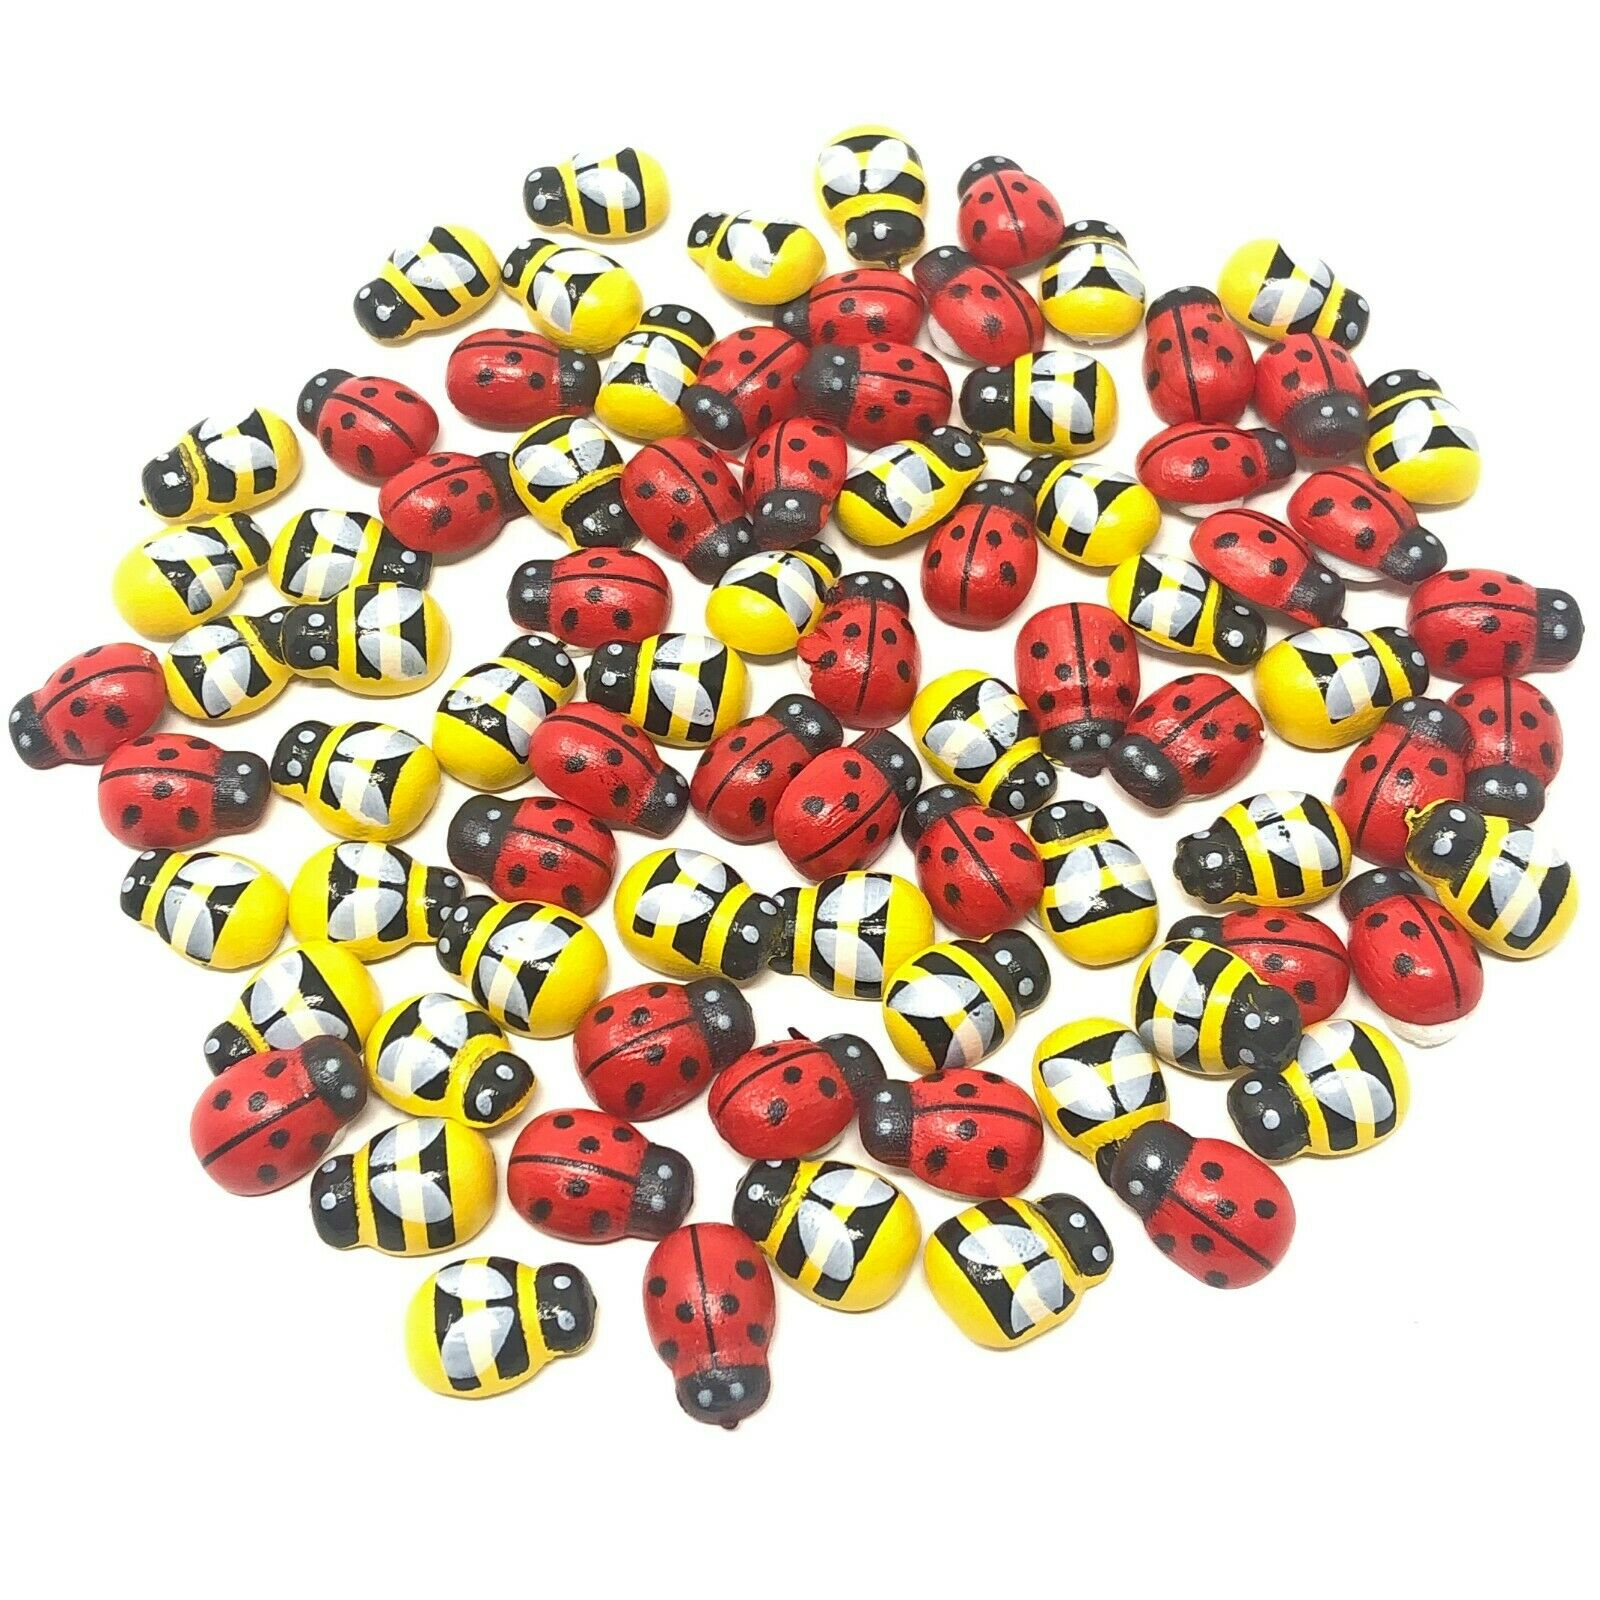 100pcs Mini 9x12mm Mixed Yellow Bees & Red Ladybirds Wooden Craft Card Wood Toppers Self-adhesive DIY Easter Crafts